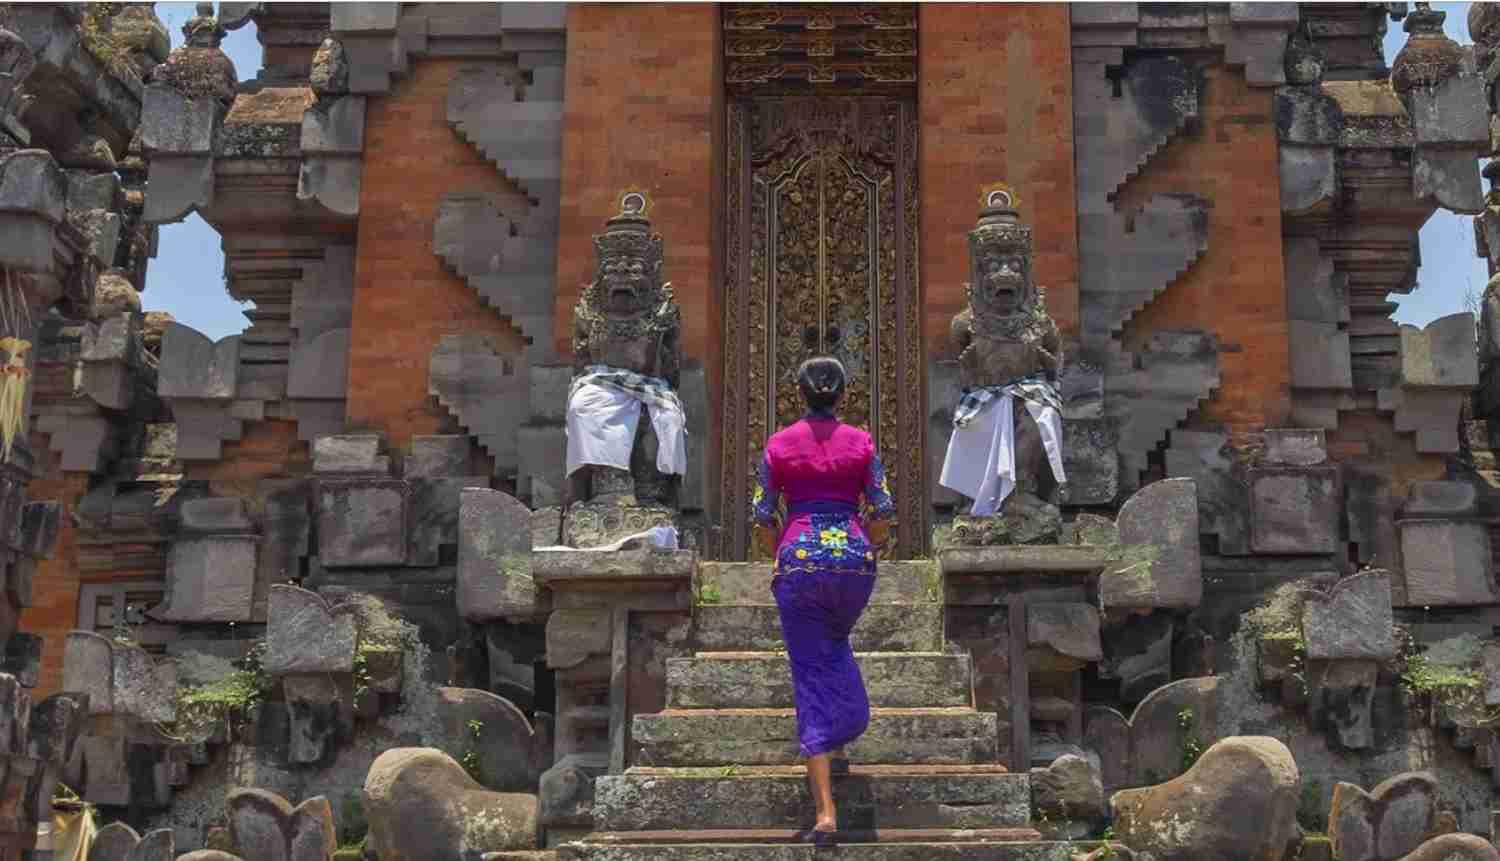 Immerse yourself in traditional Balinese culture with the help of The Ritz-Carlton